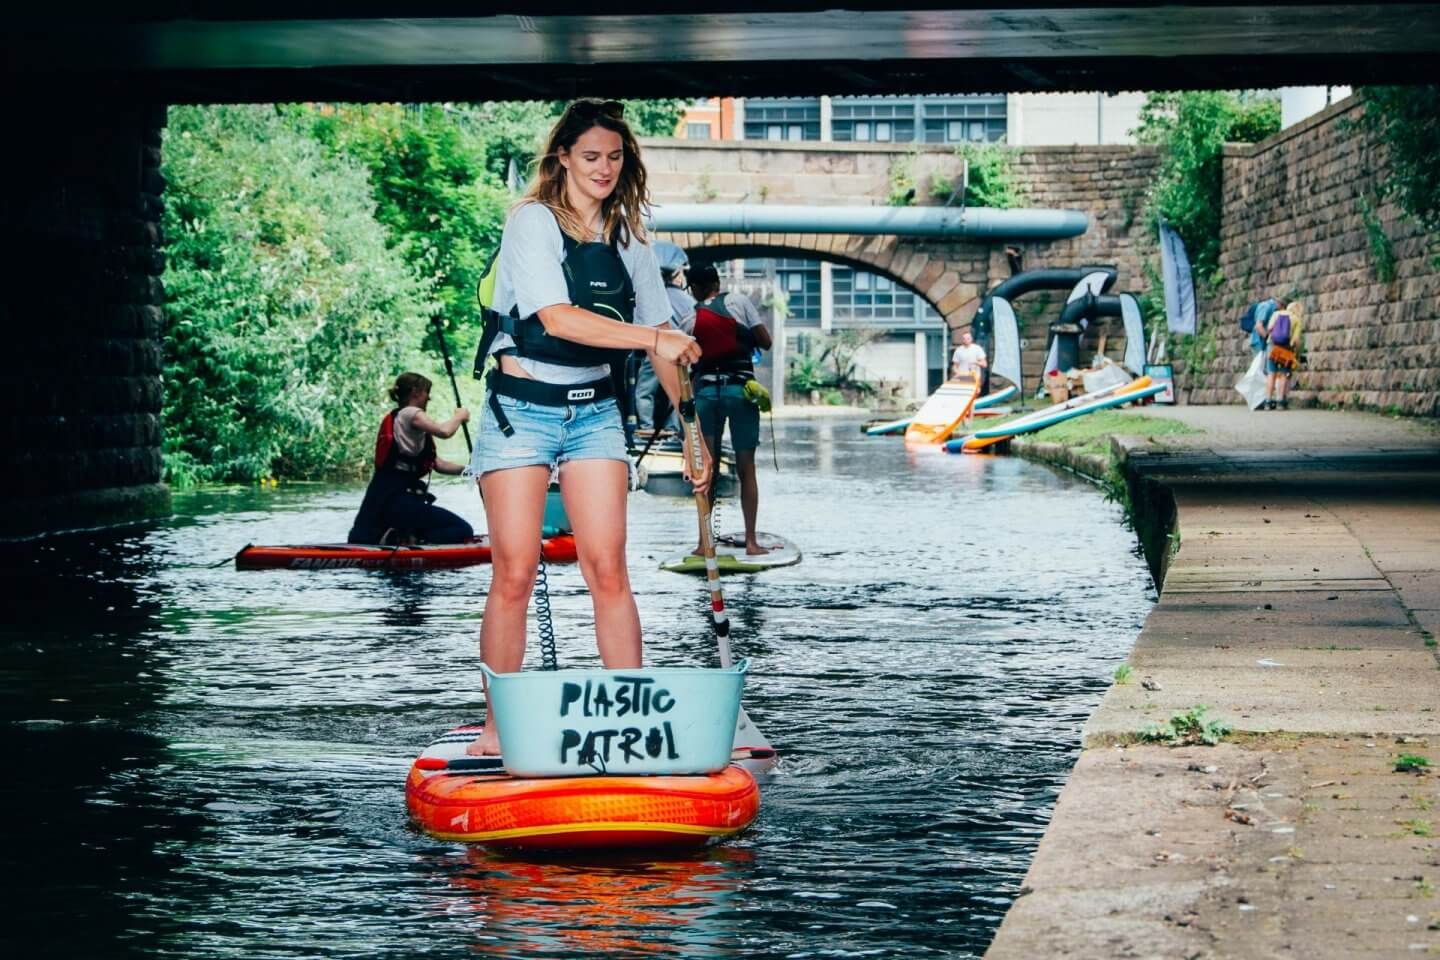 Plastic Patrol founder Lizzie Carr on a SUP